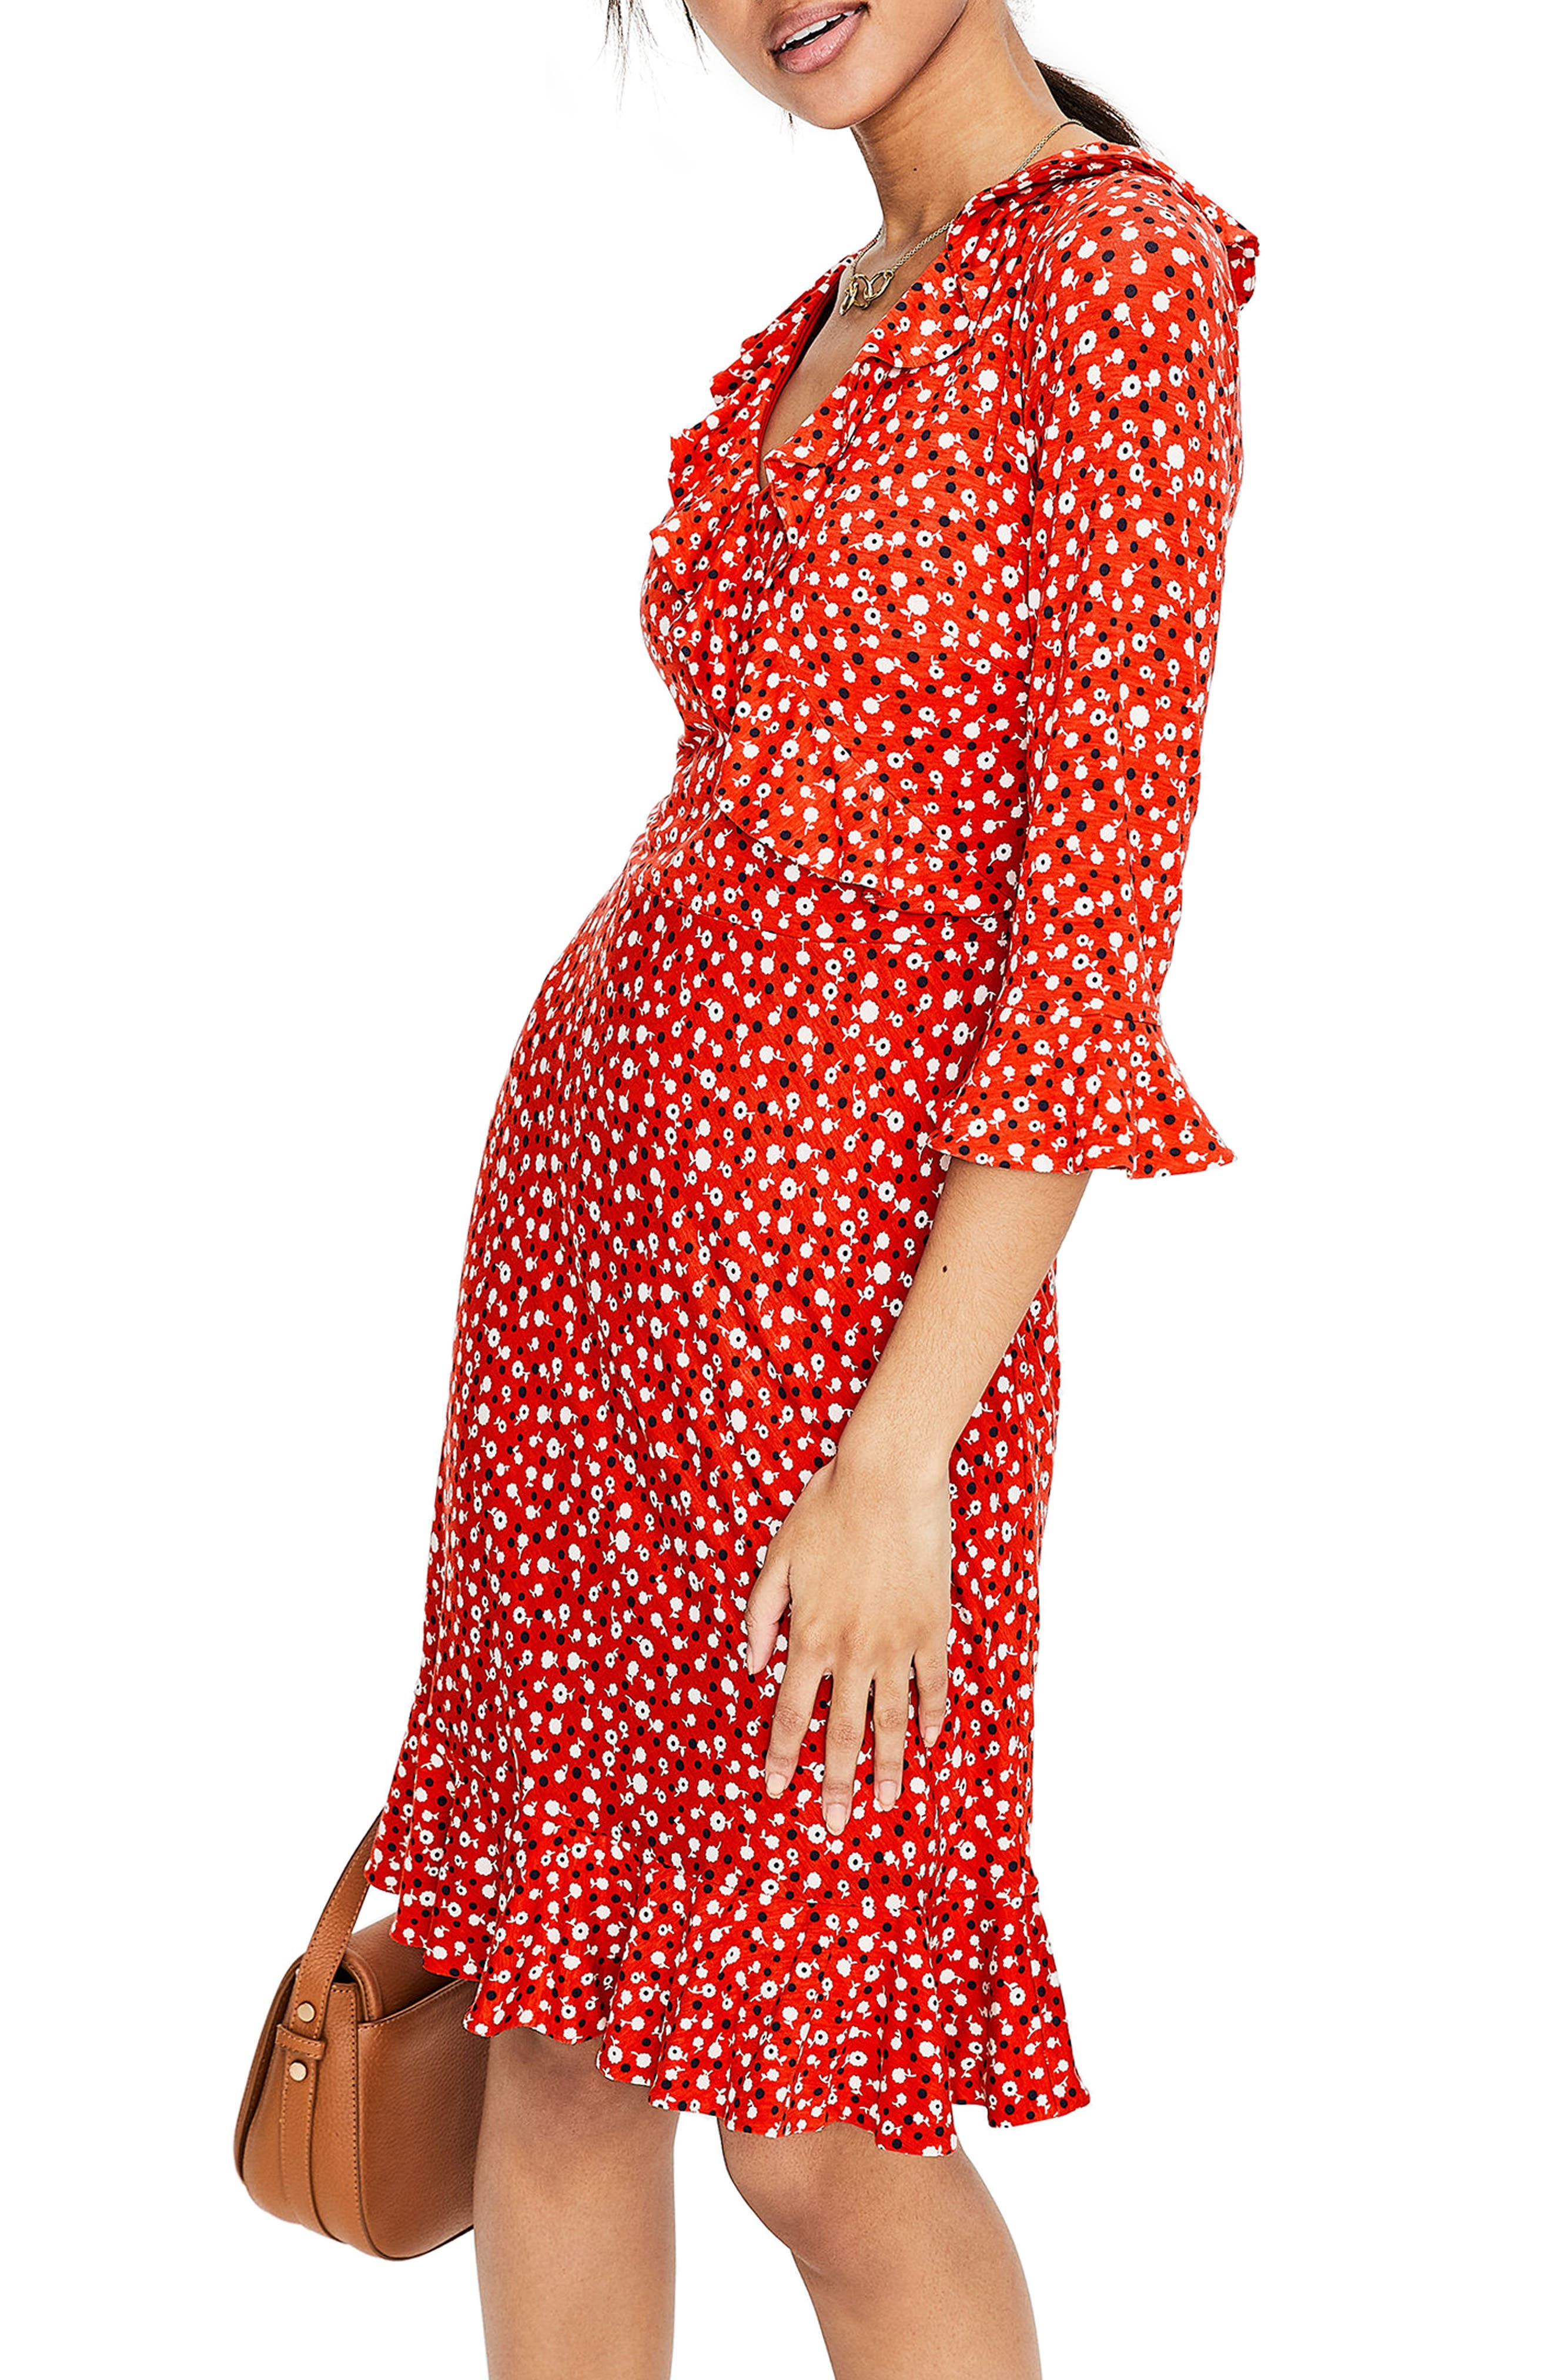 Fluted Wrap Style Stretch Jersey Dress,                             Alternate thumbnail 4, color,                             Rosehip Daisy Ditsy